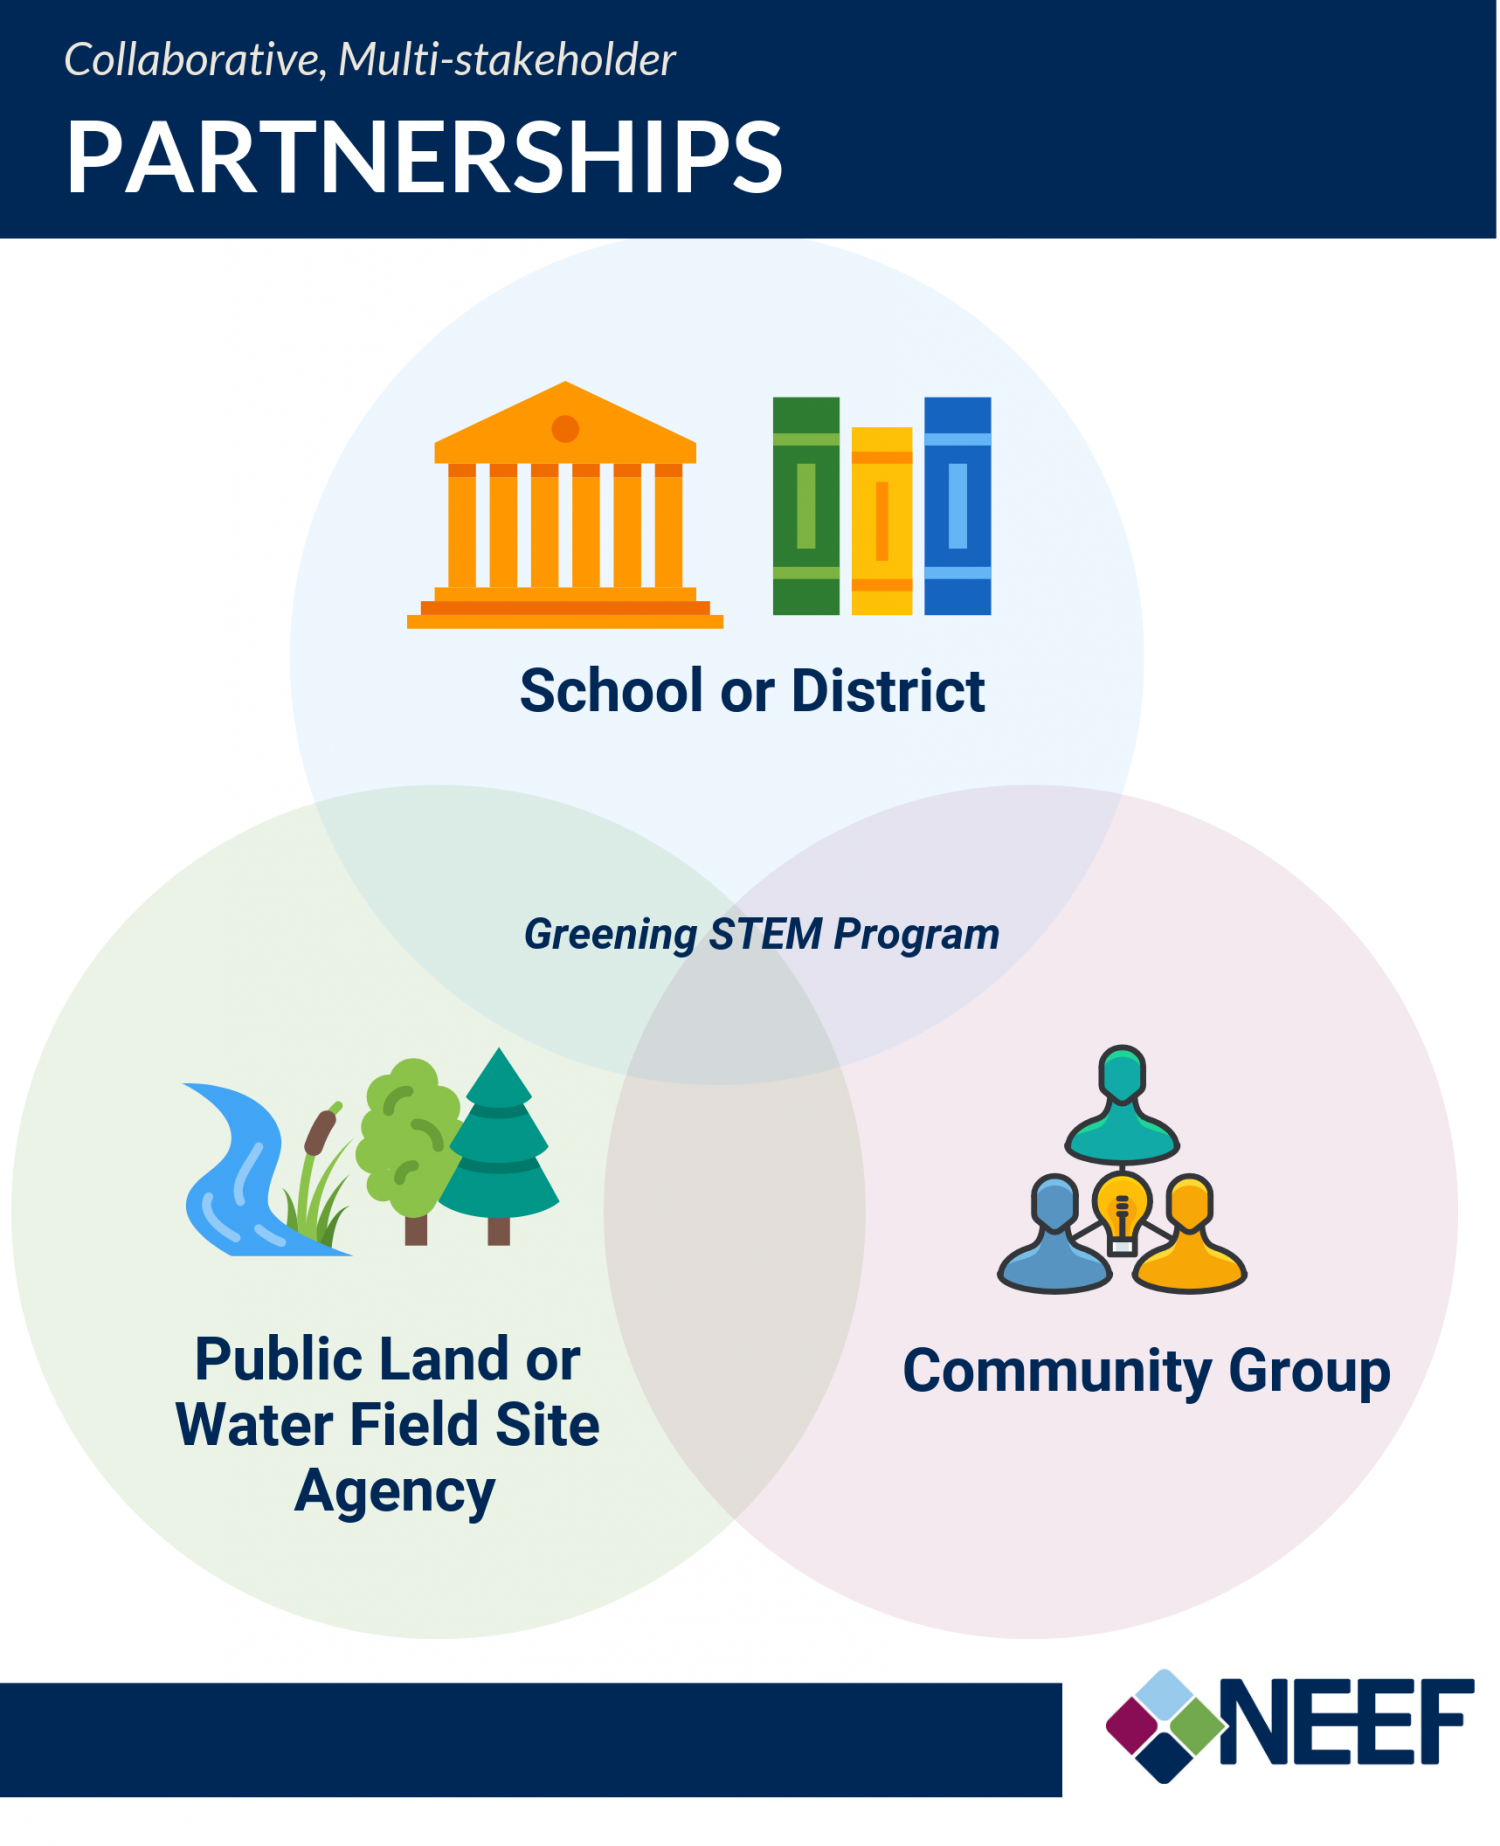 Collaborative, Multi-stakeholder Partnerships: School or District/Public Land or Water Field Site Agency/Community Group